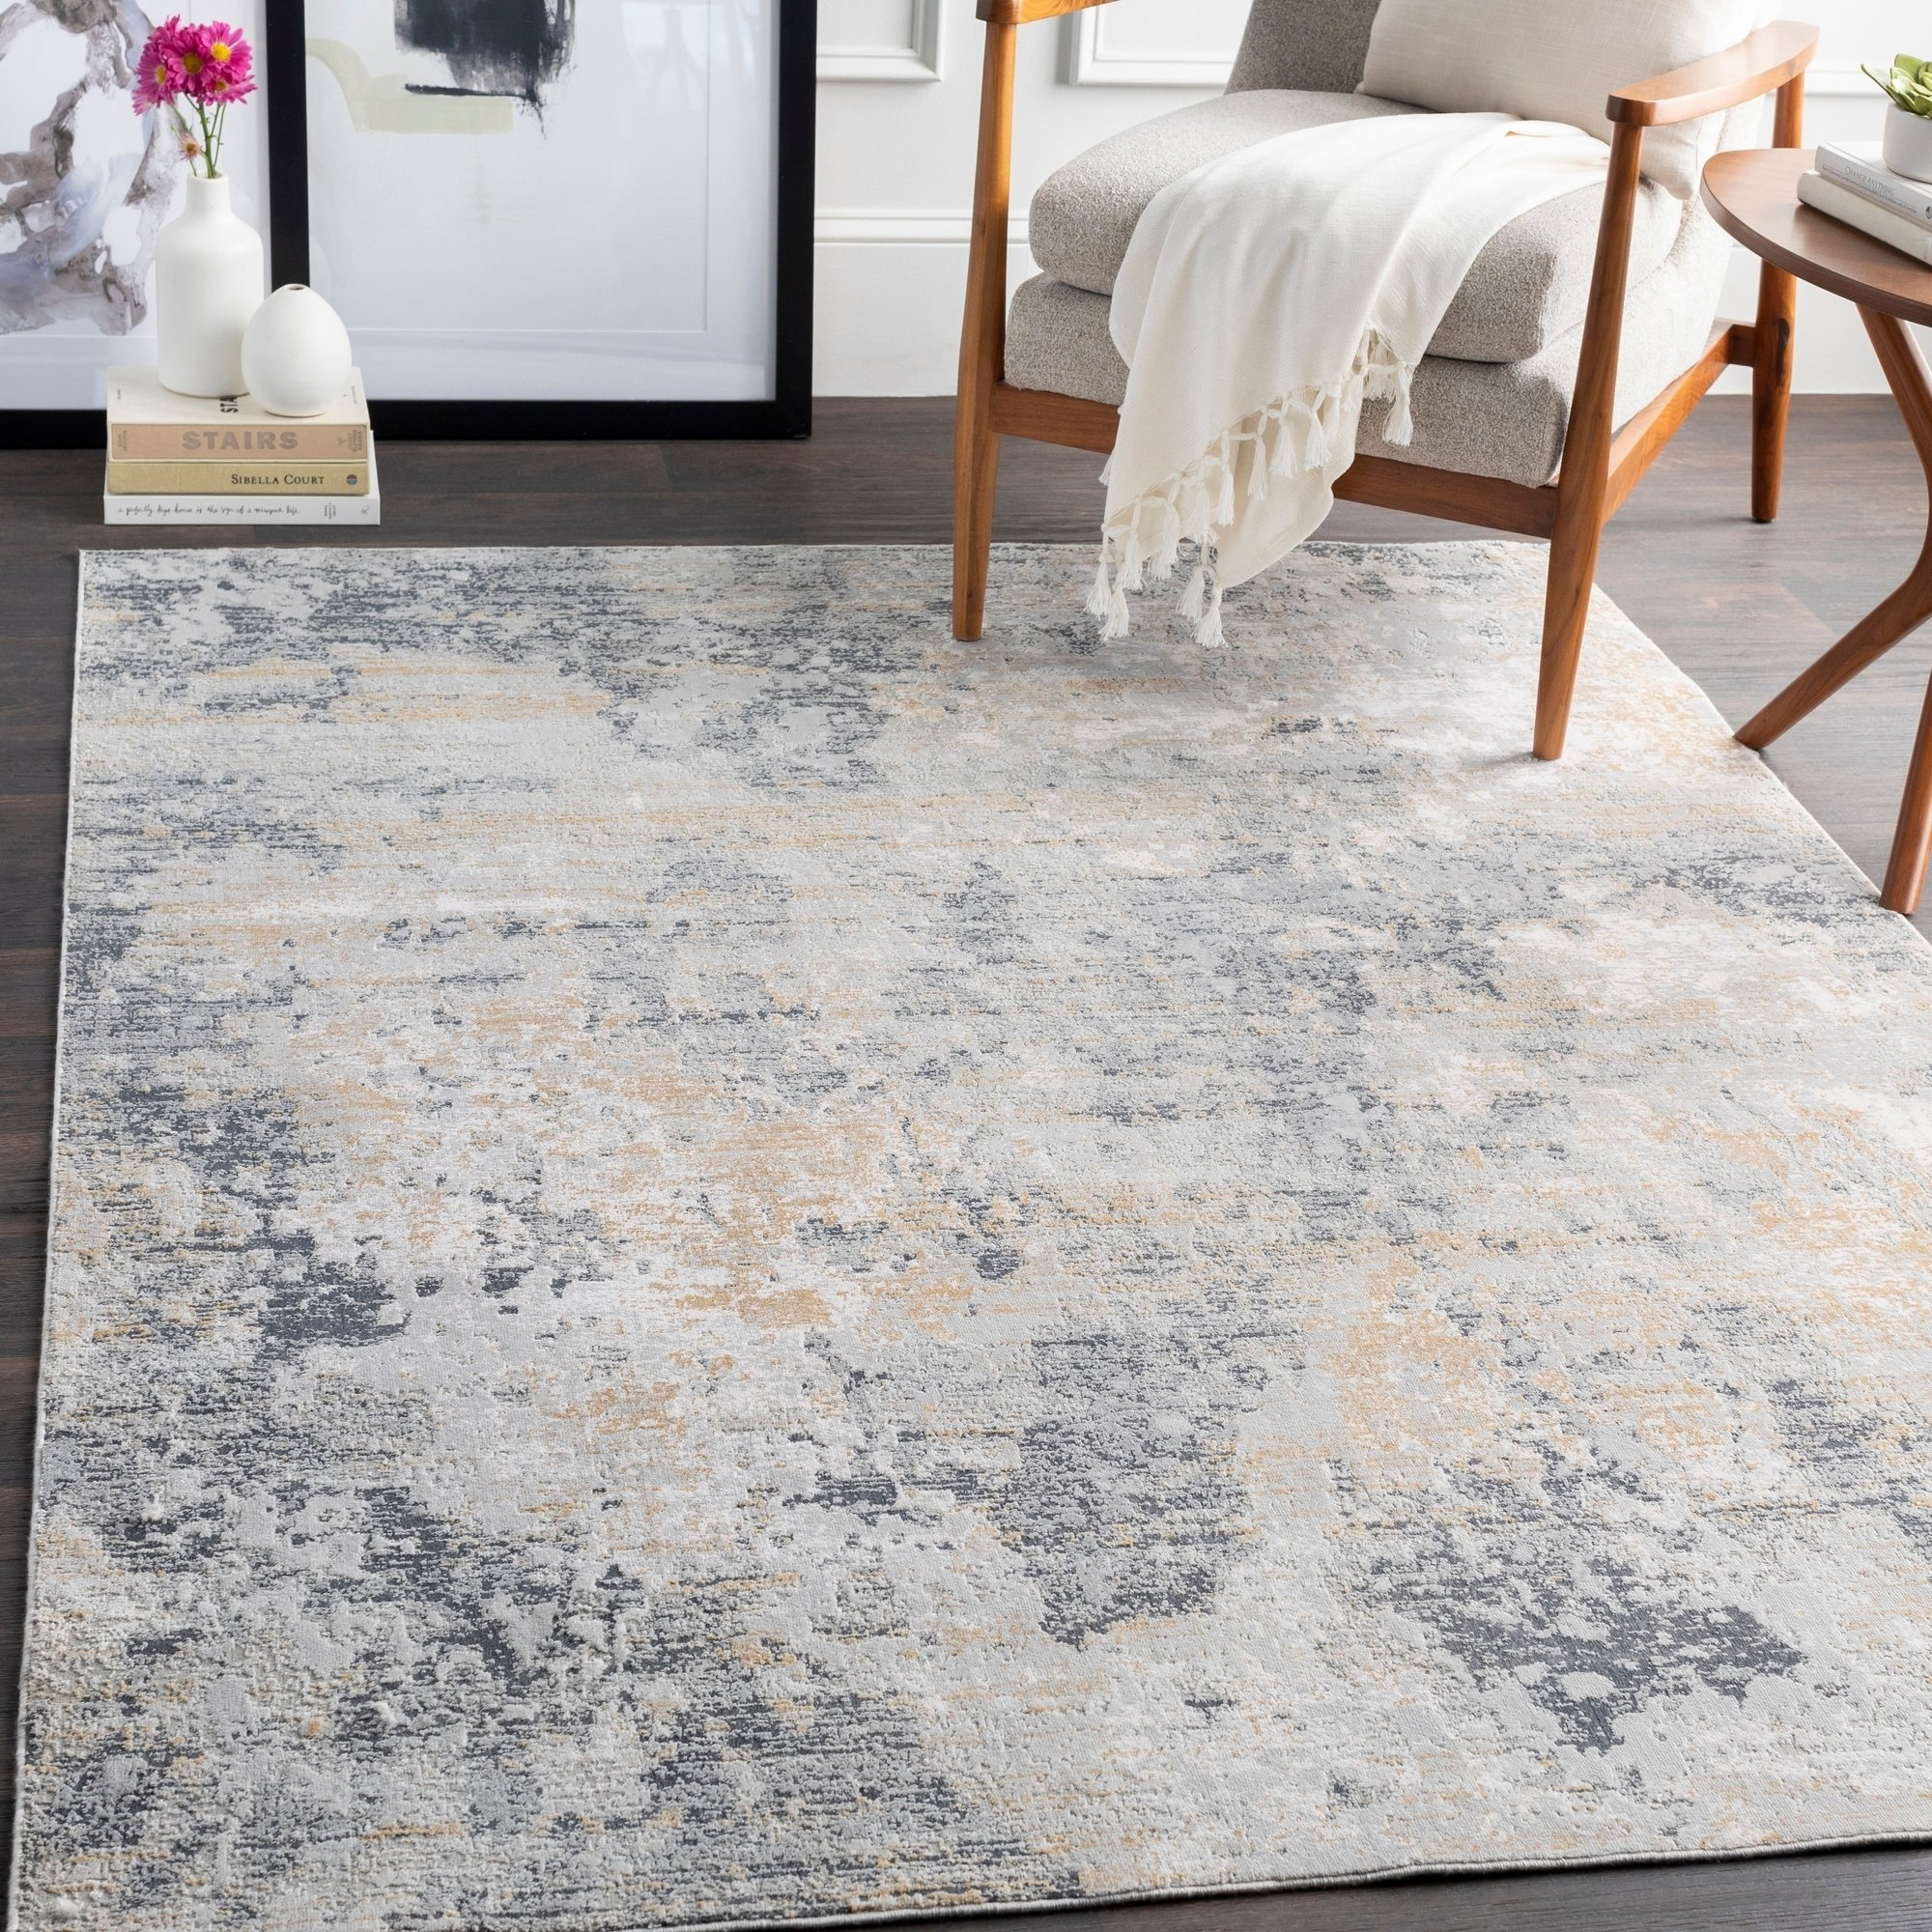 Accent Rugs for Bedroom Best Of Line Shopping Bedding Furniture Electronics Jewelry